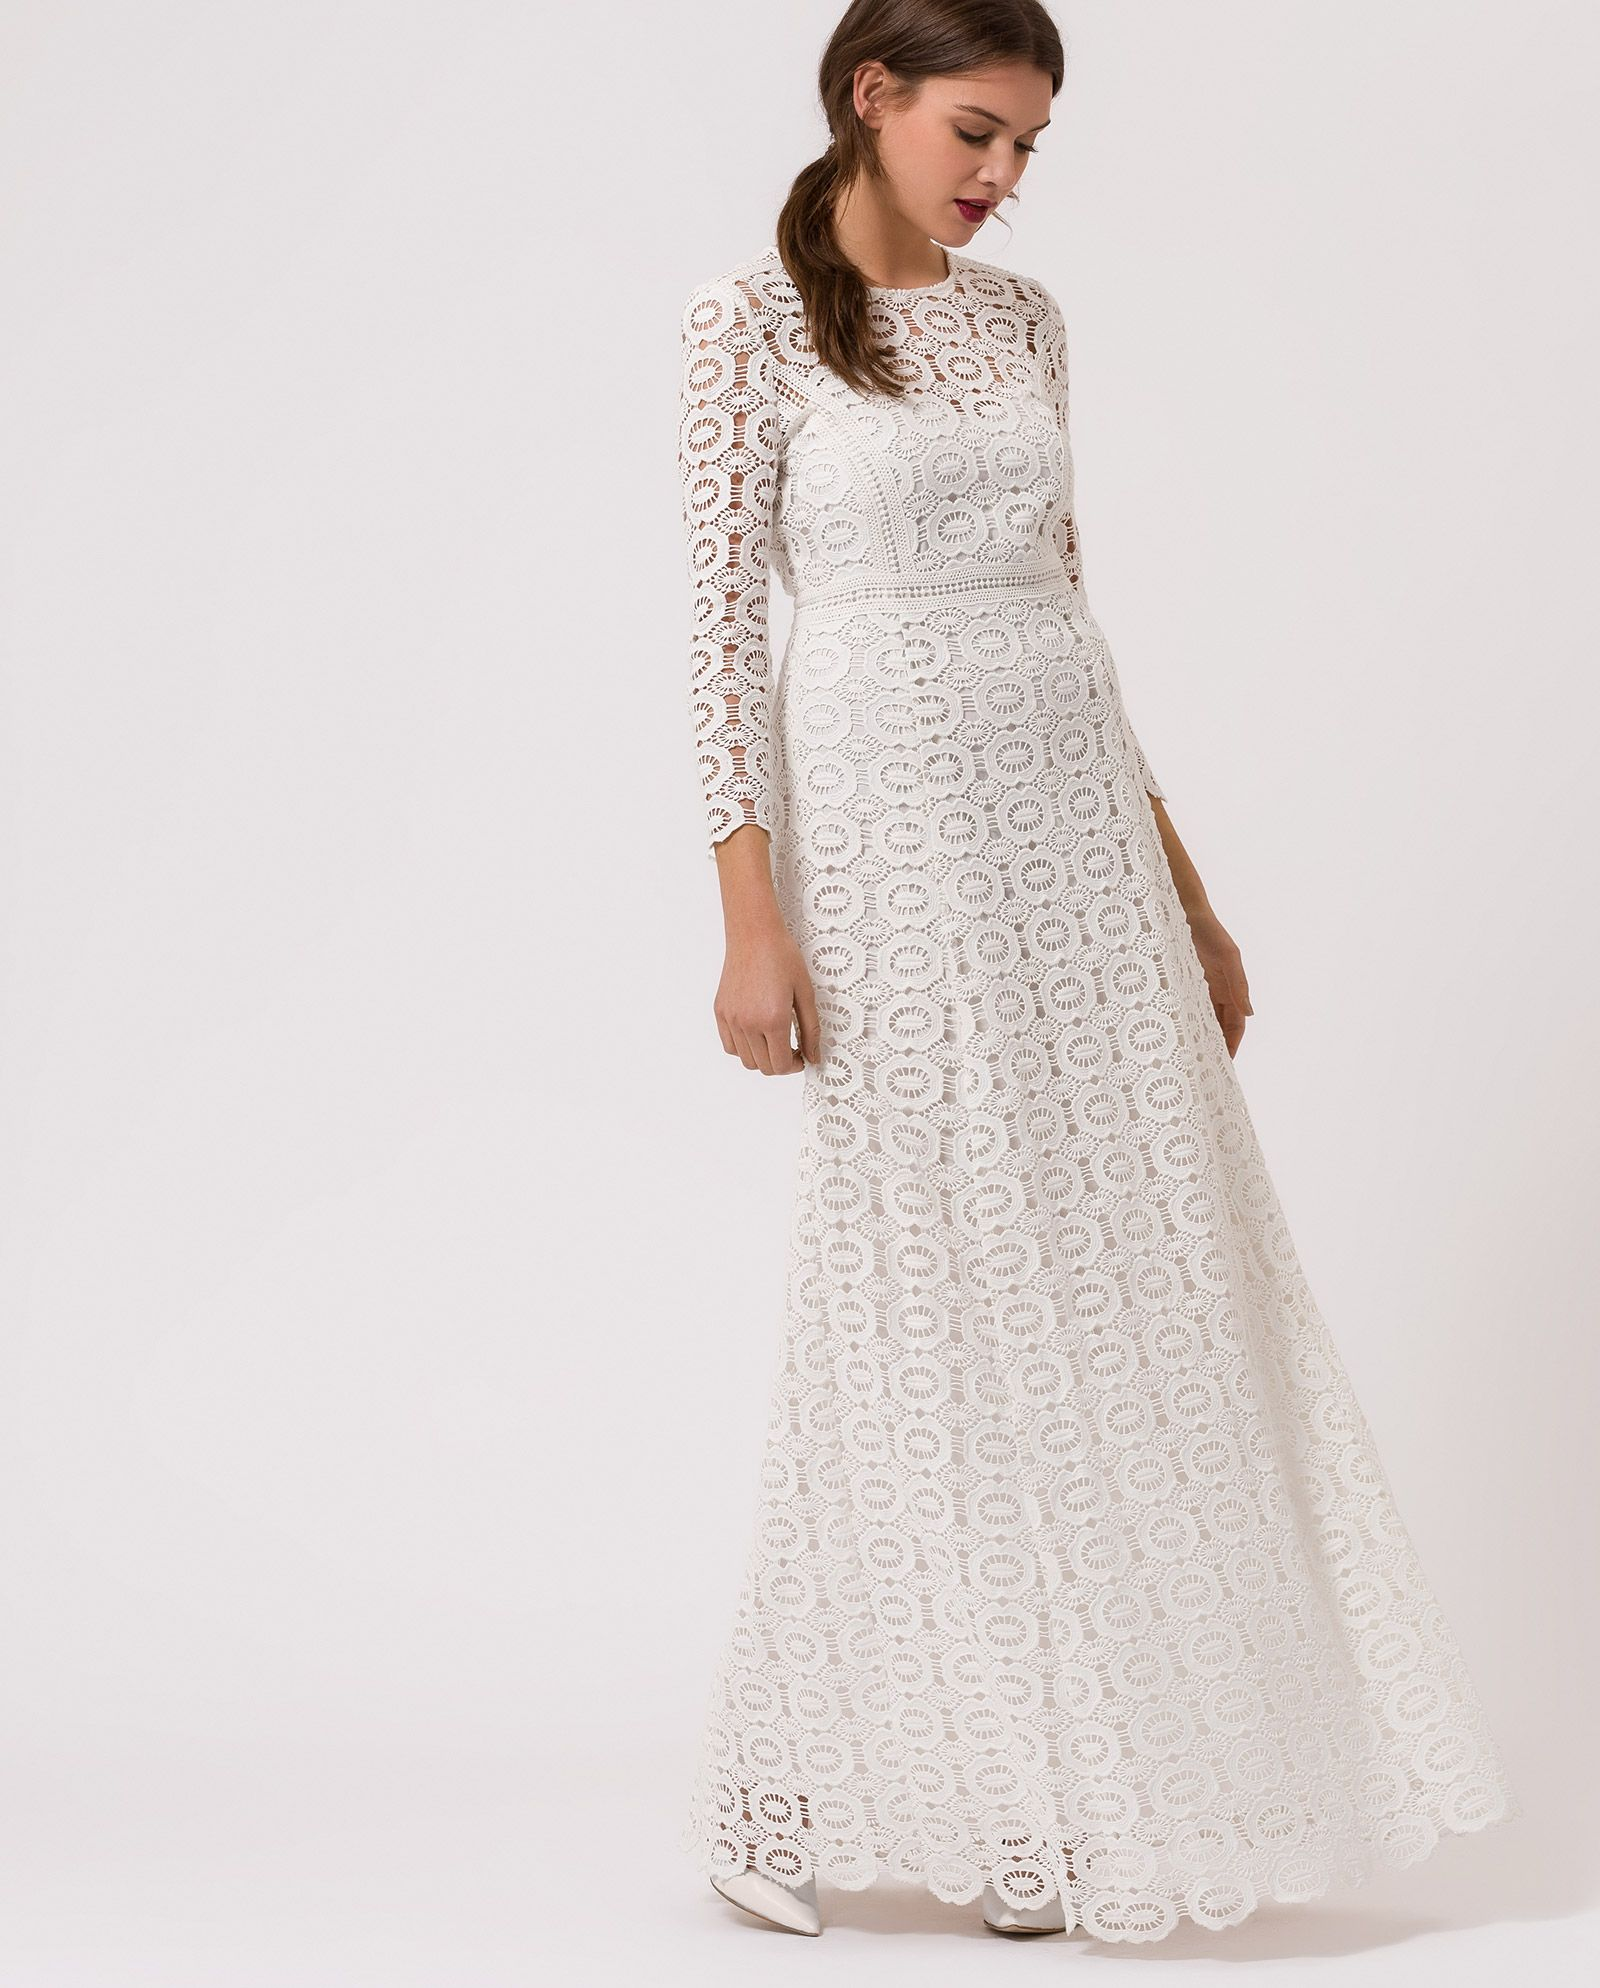 82b9beeda624 Crochet Occasion Dress - snow white - IVY   OAK